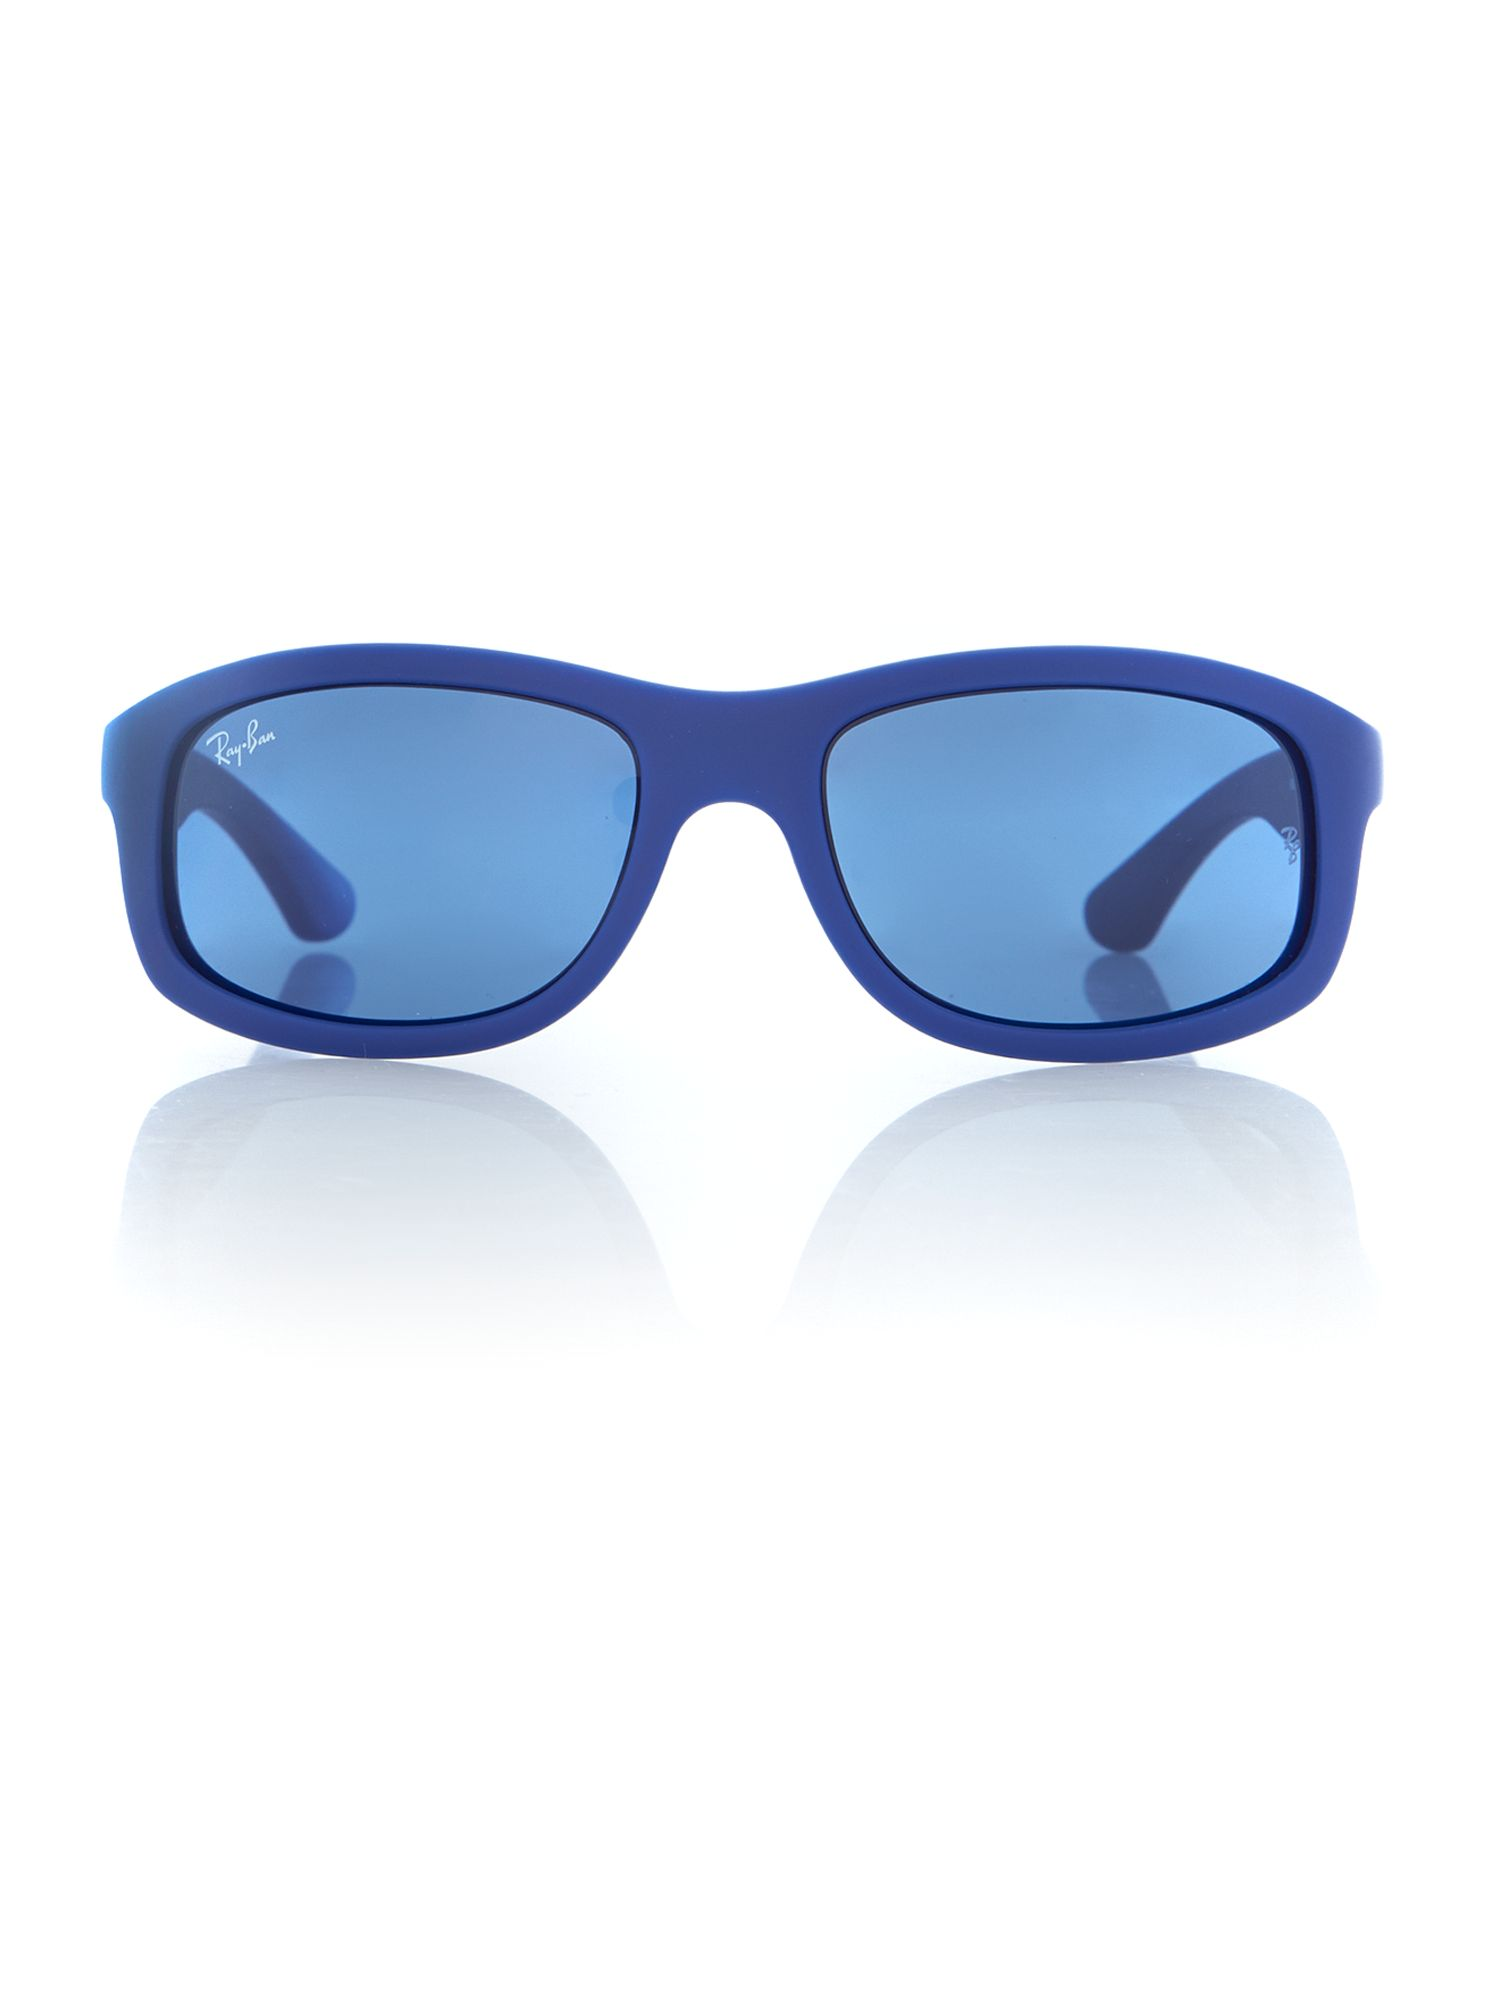 Men blue rectangle sunglasses